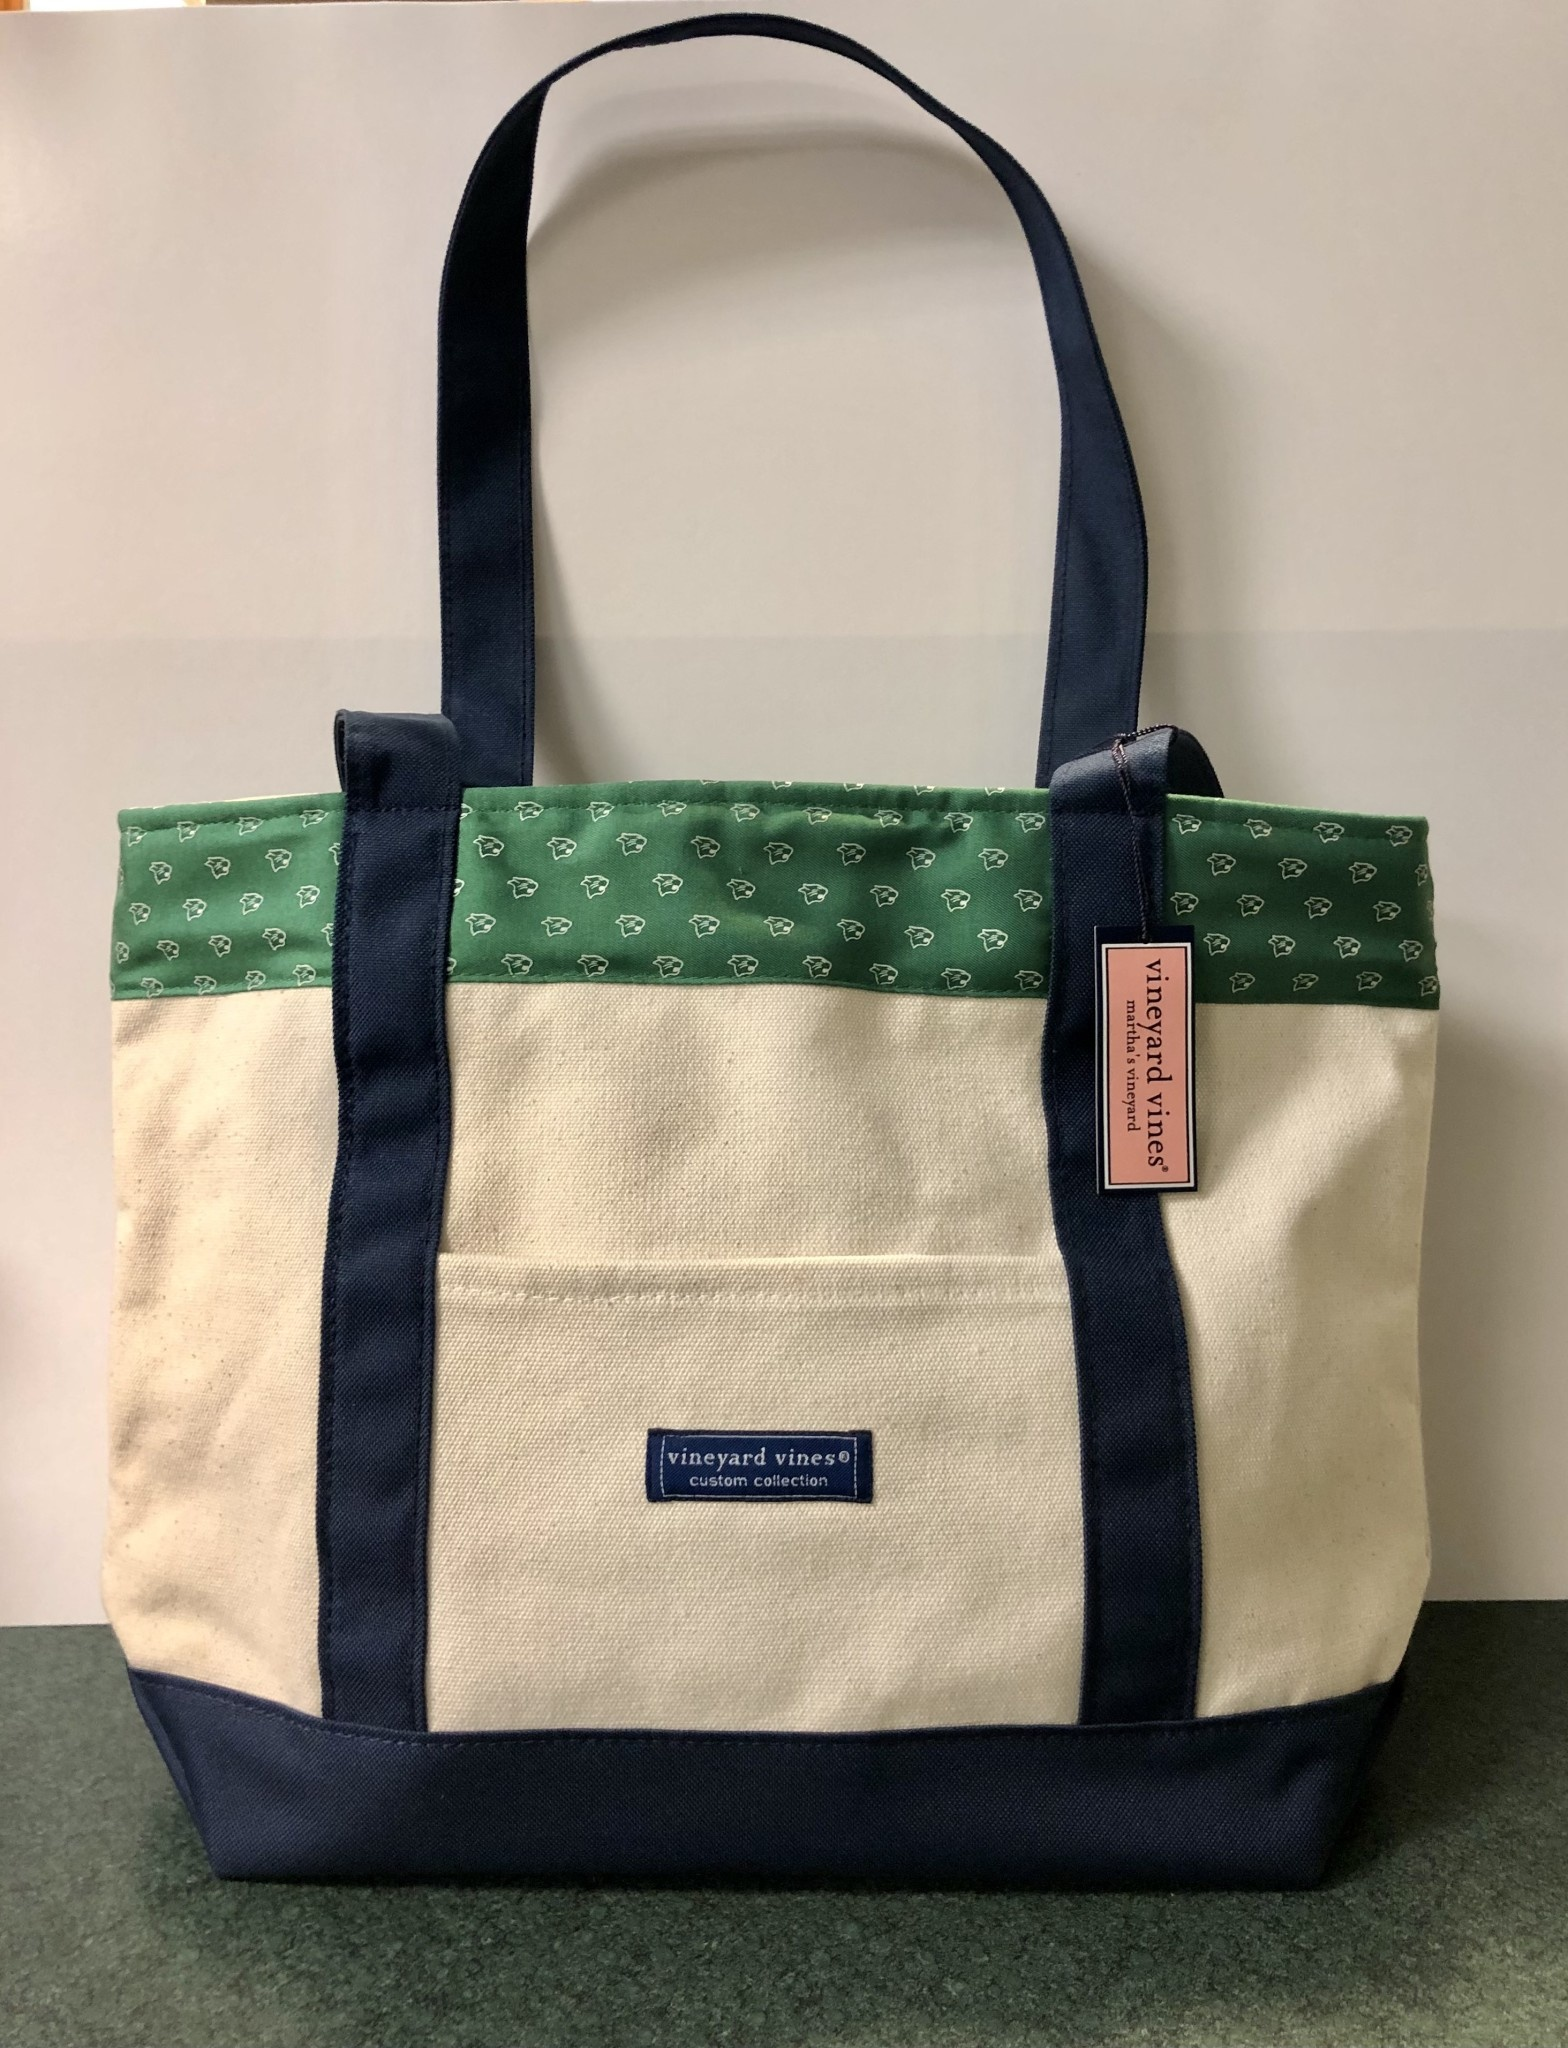 Vineyard Vines Tote: Vineyard Vines